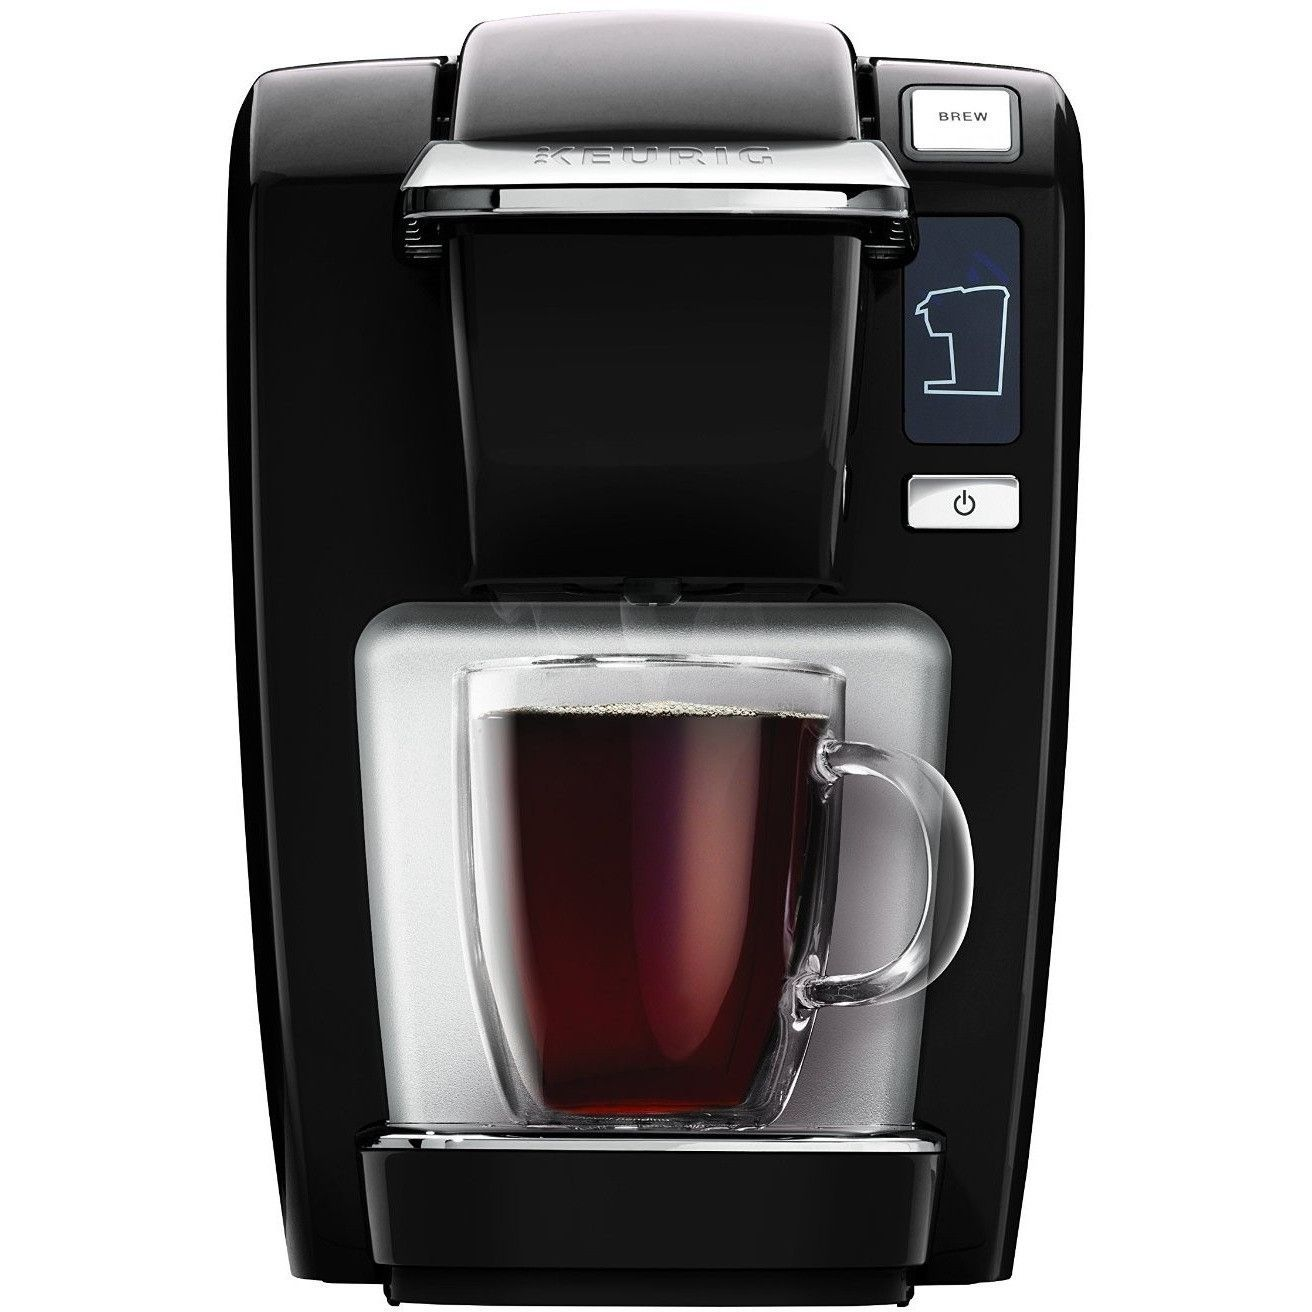 Keurig K15 Coffee Maker Black (New Packaging) Refurbished